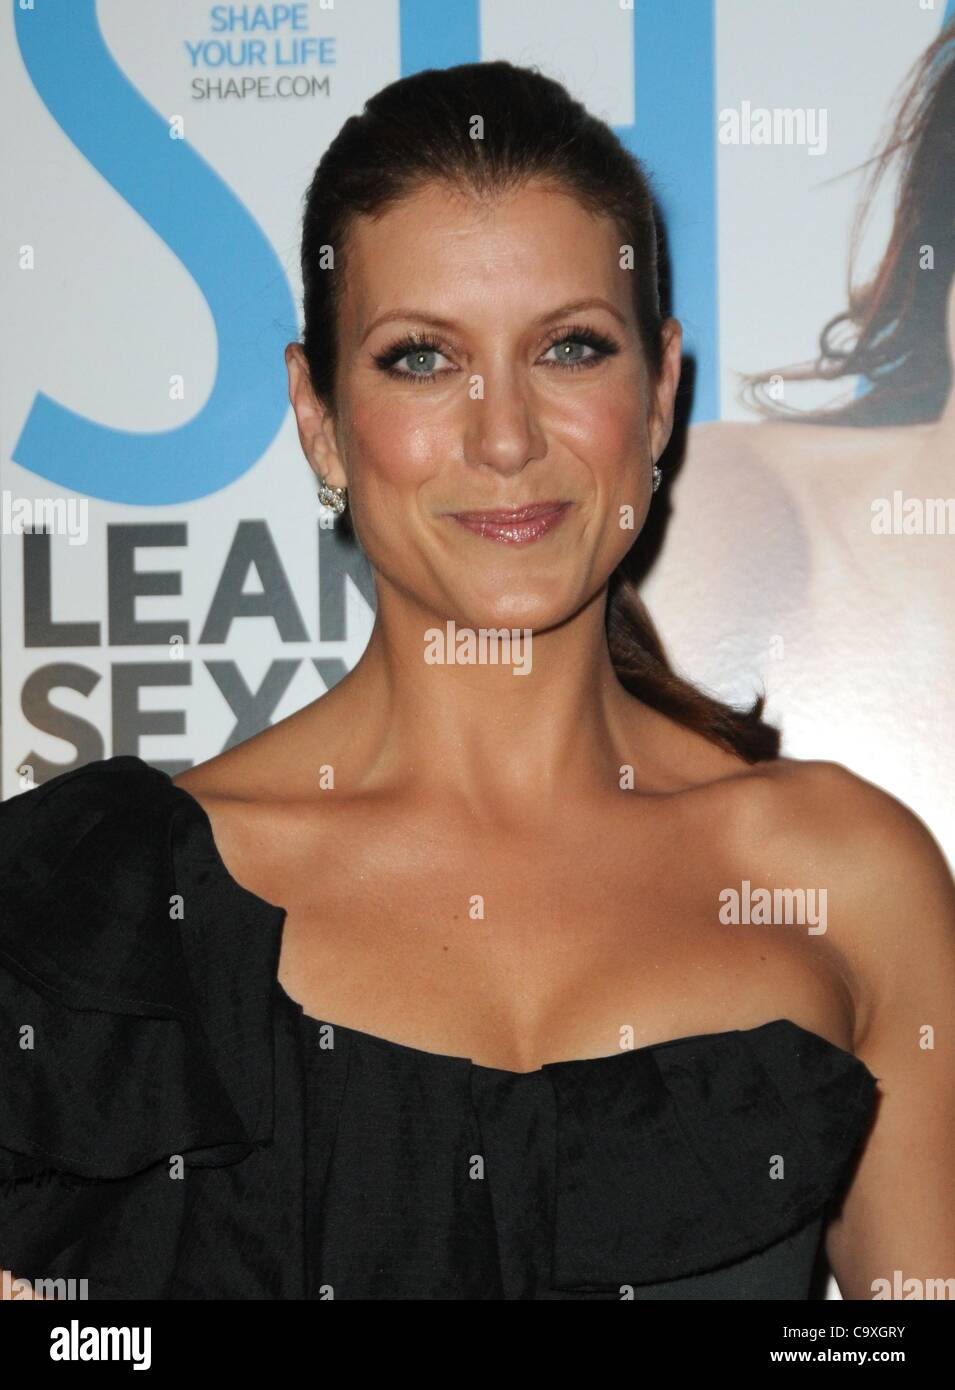 Kate Walsh in attendance for Kate Walsh SHAPE Magazine Cover